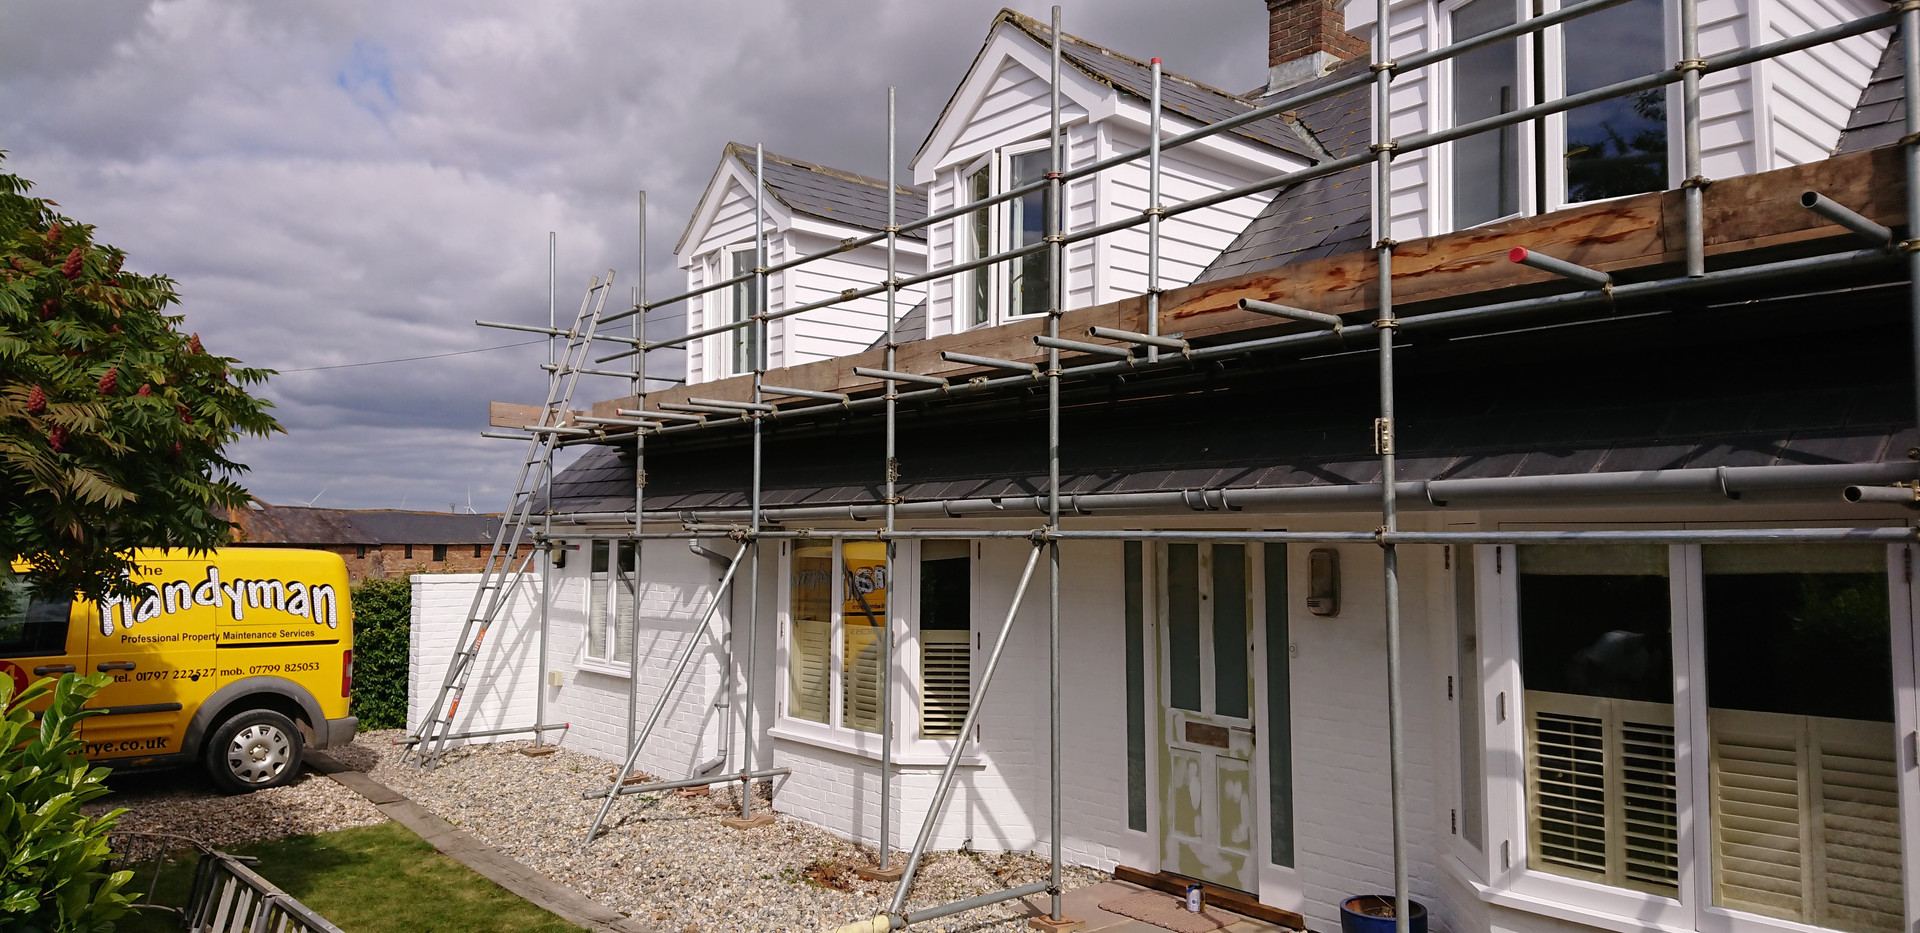 exterior house painting with scaffolding and yellow handyman van